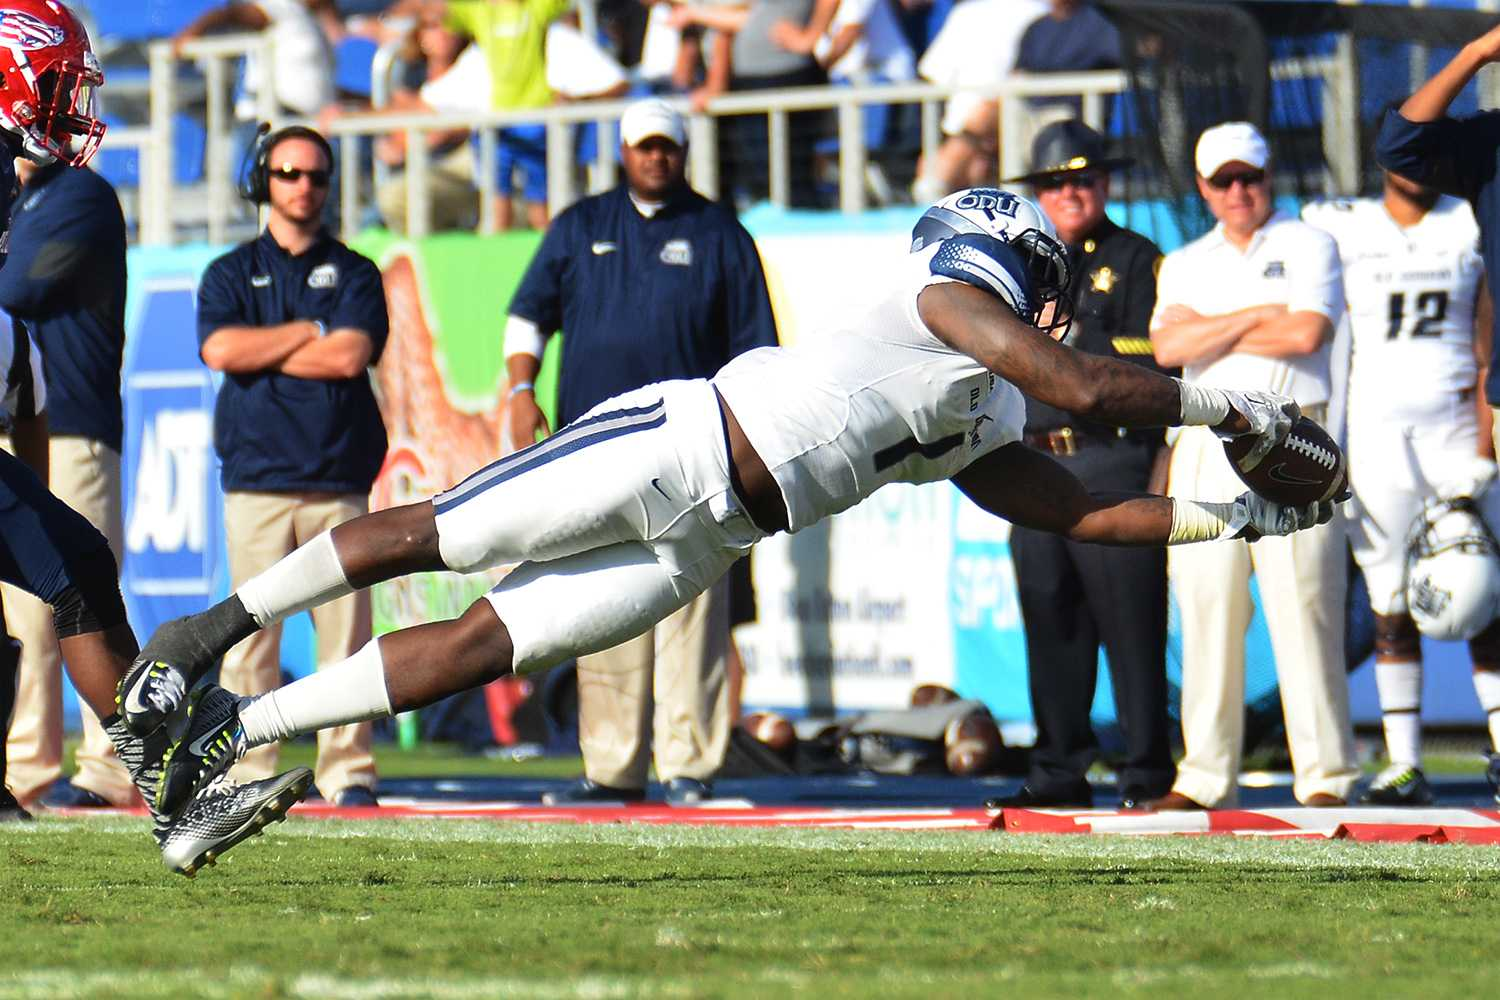 Old Dominion wide receiver Melvin Vaughn dives for a catch in the fourth quarter of Saturday's game between the Owls and Monarchs.